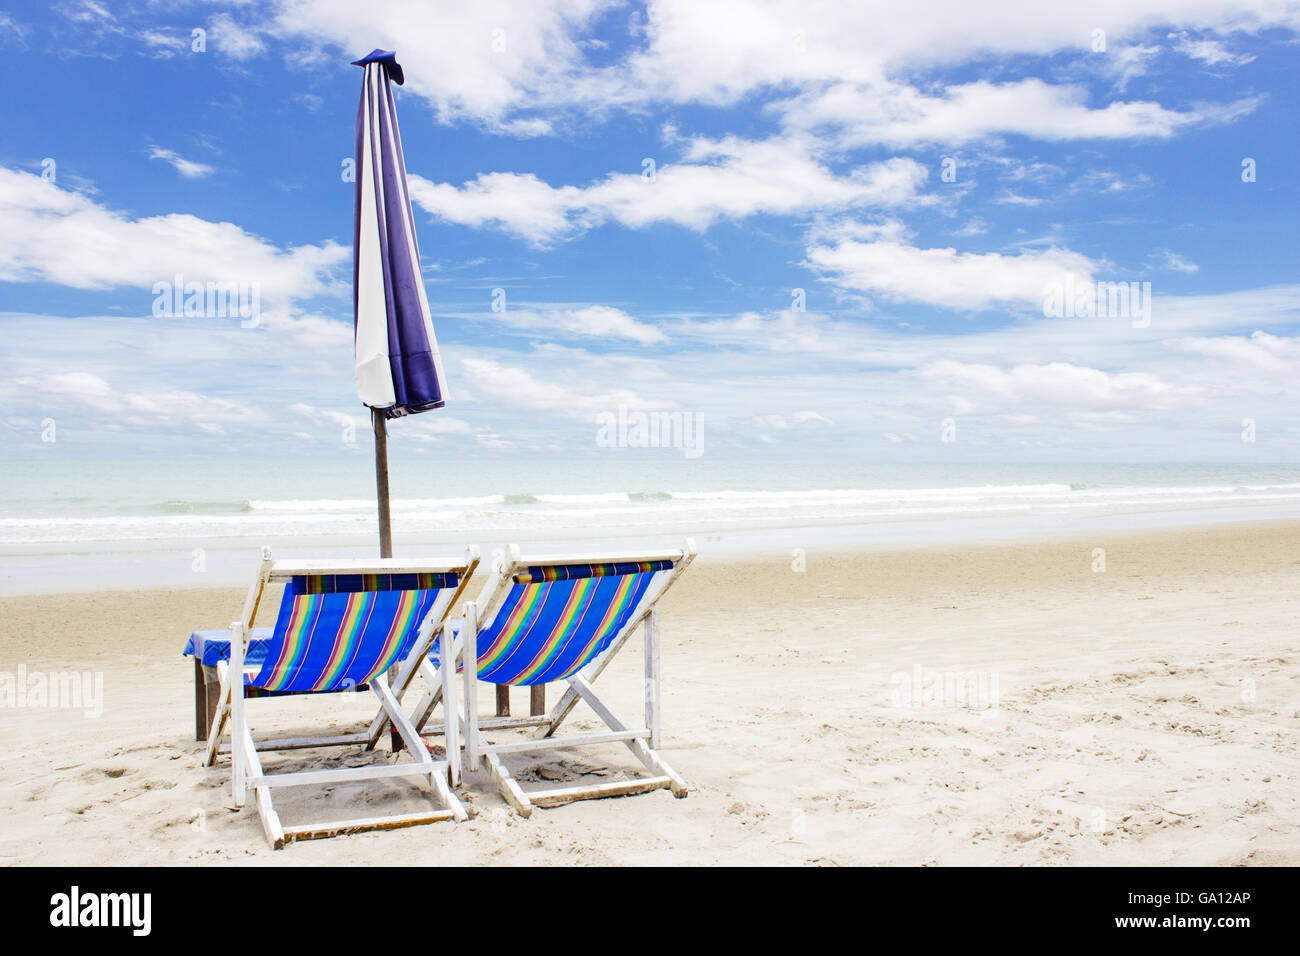 Beach Lounge Chairs Two Beach Lounge Chairs And Tent On Beach And Blue Sky Background